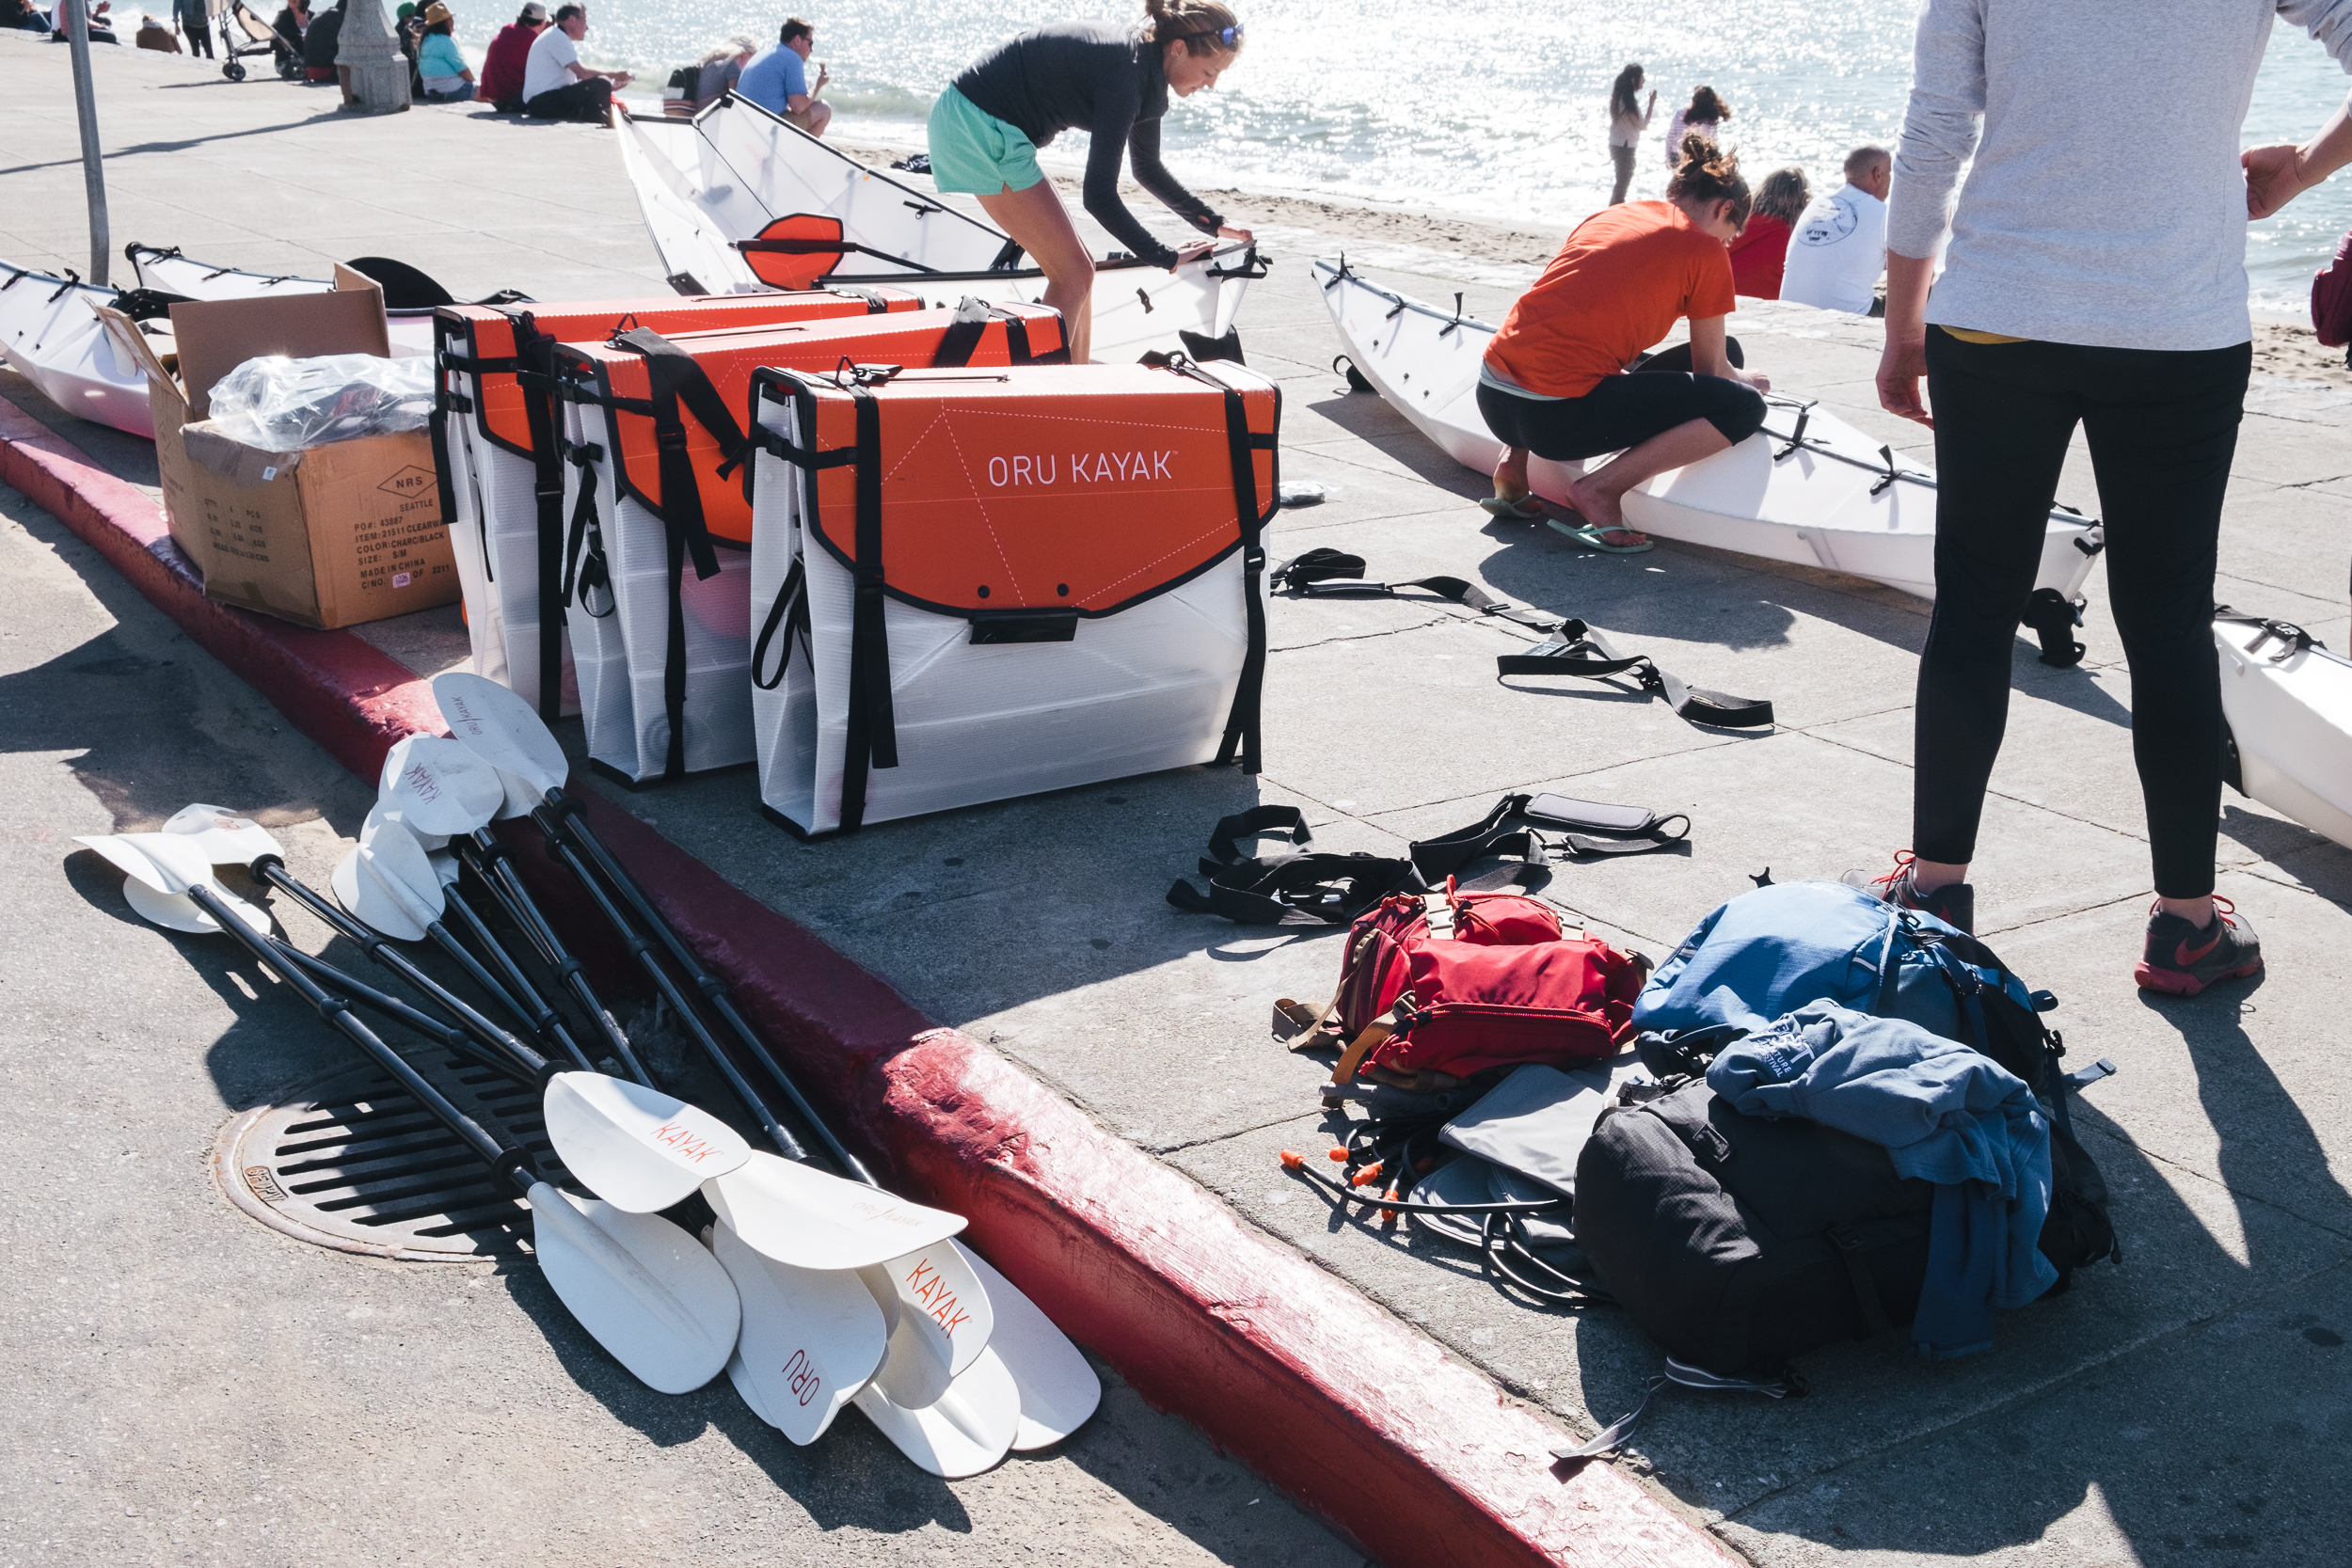 Unfolding and assembling our kayaks.